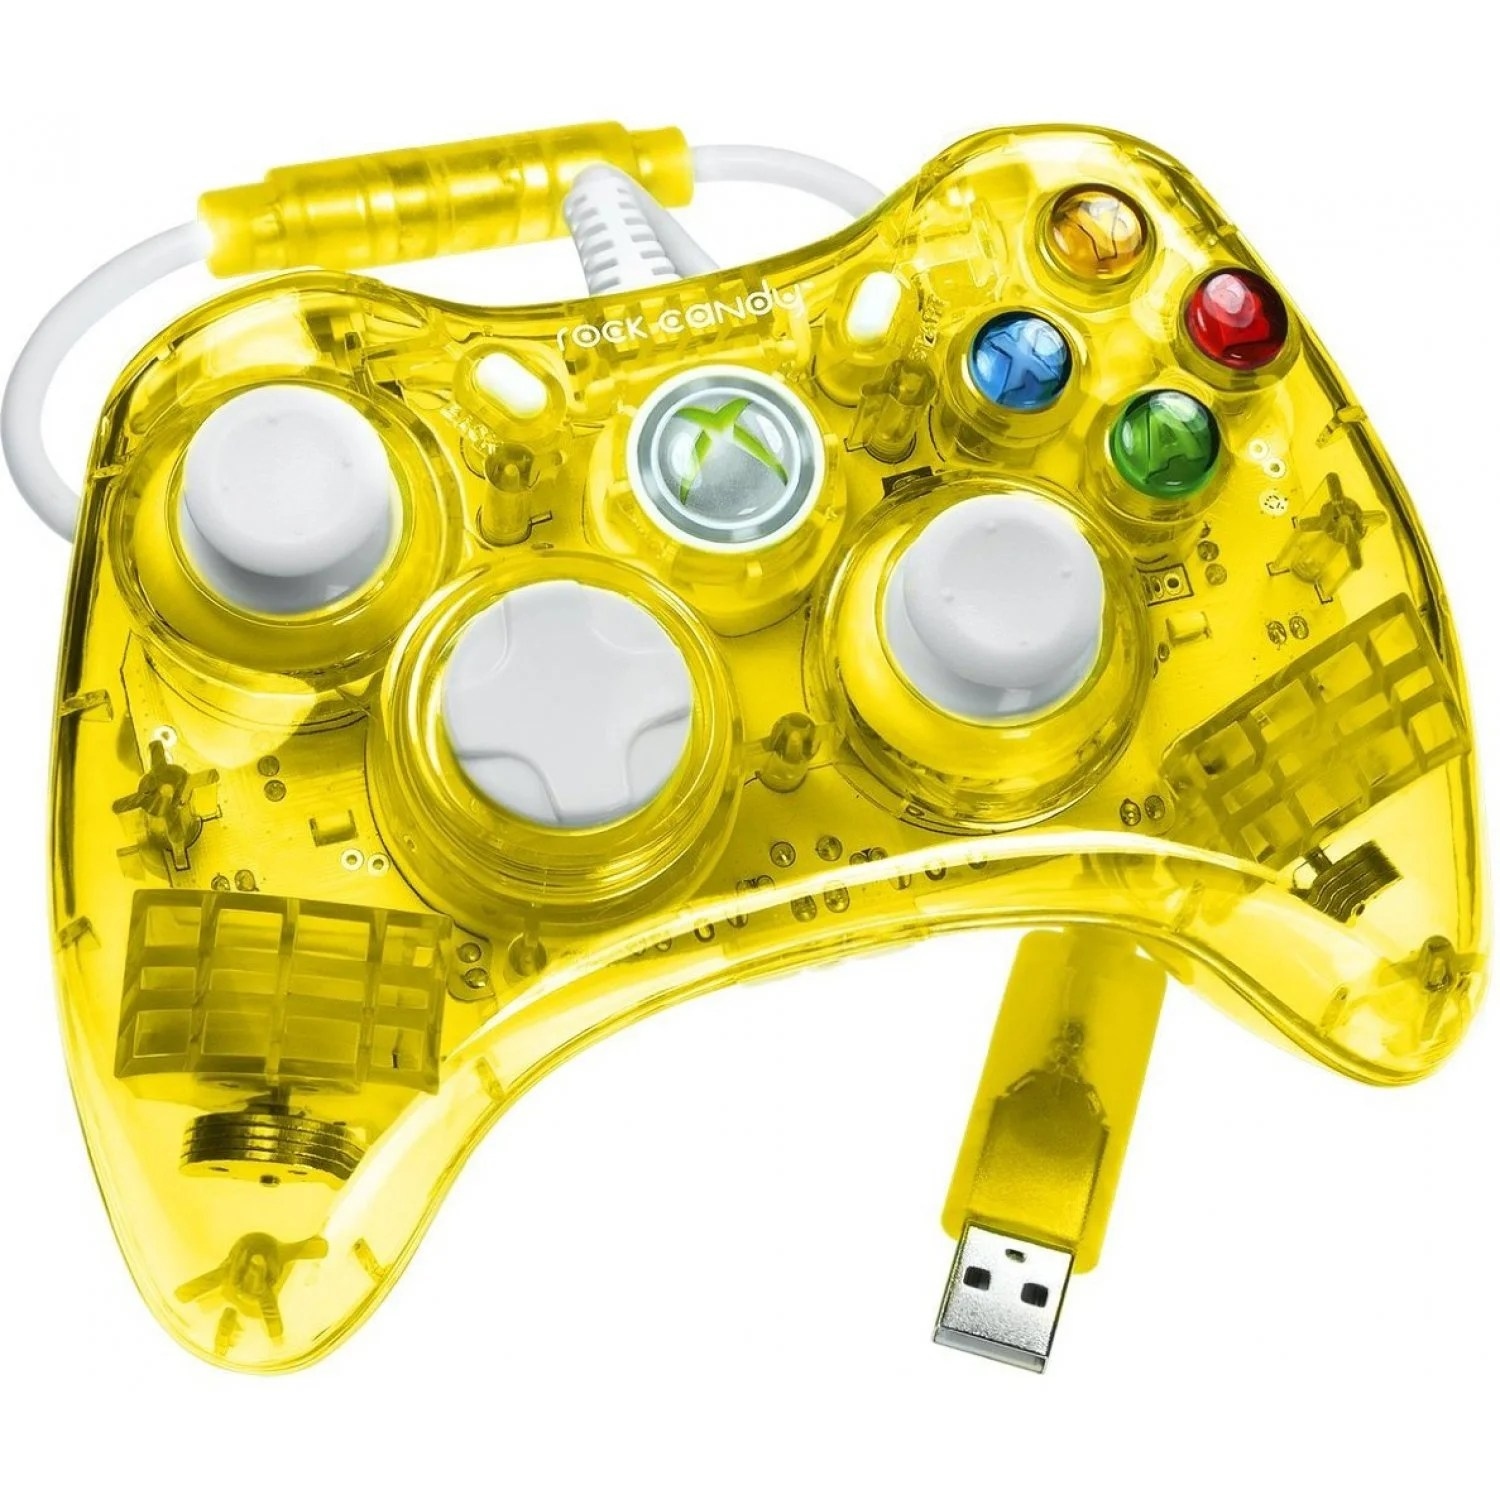 hight resolution of rock candy xbox 360 wired controller yellow 331951 1 jpg o3hx39